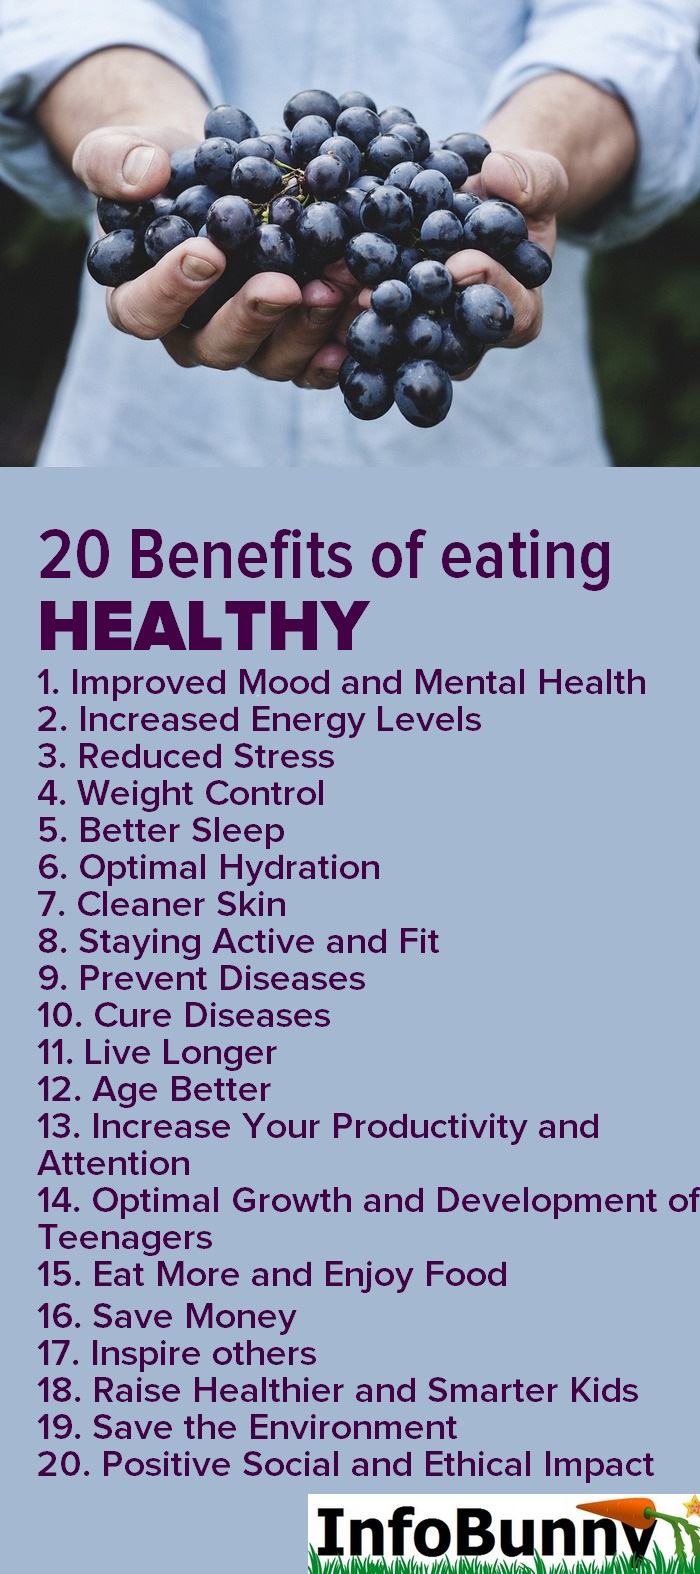 Pniterest image for Benefits of healthy eating